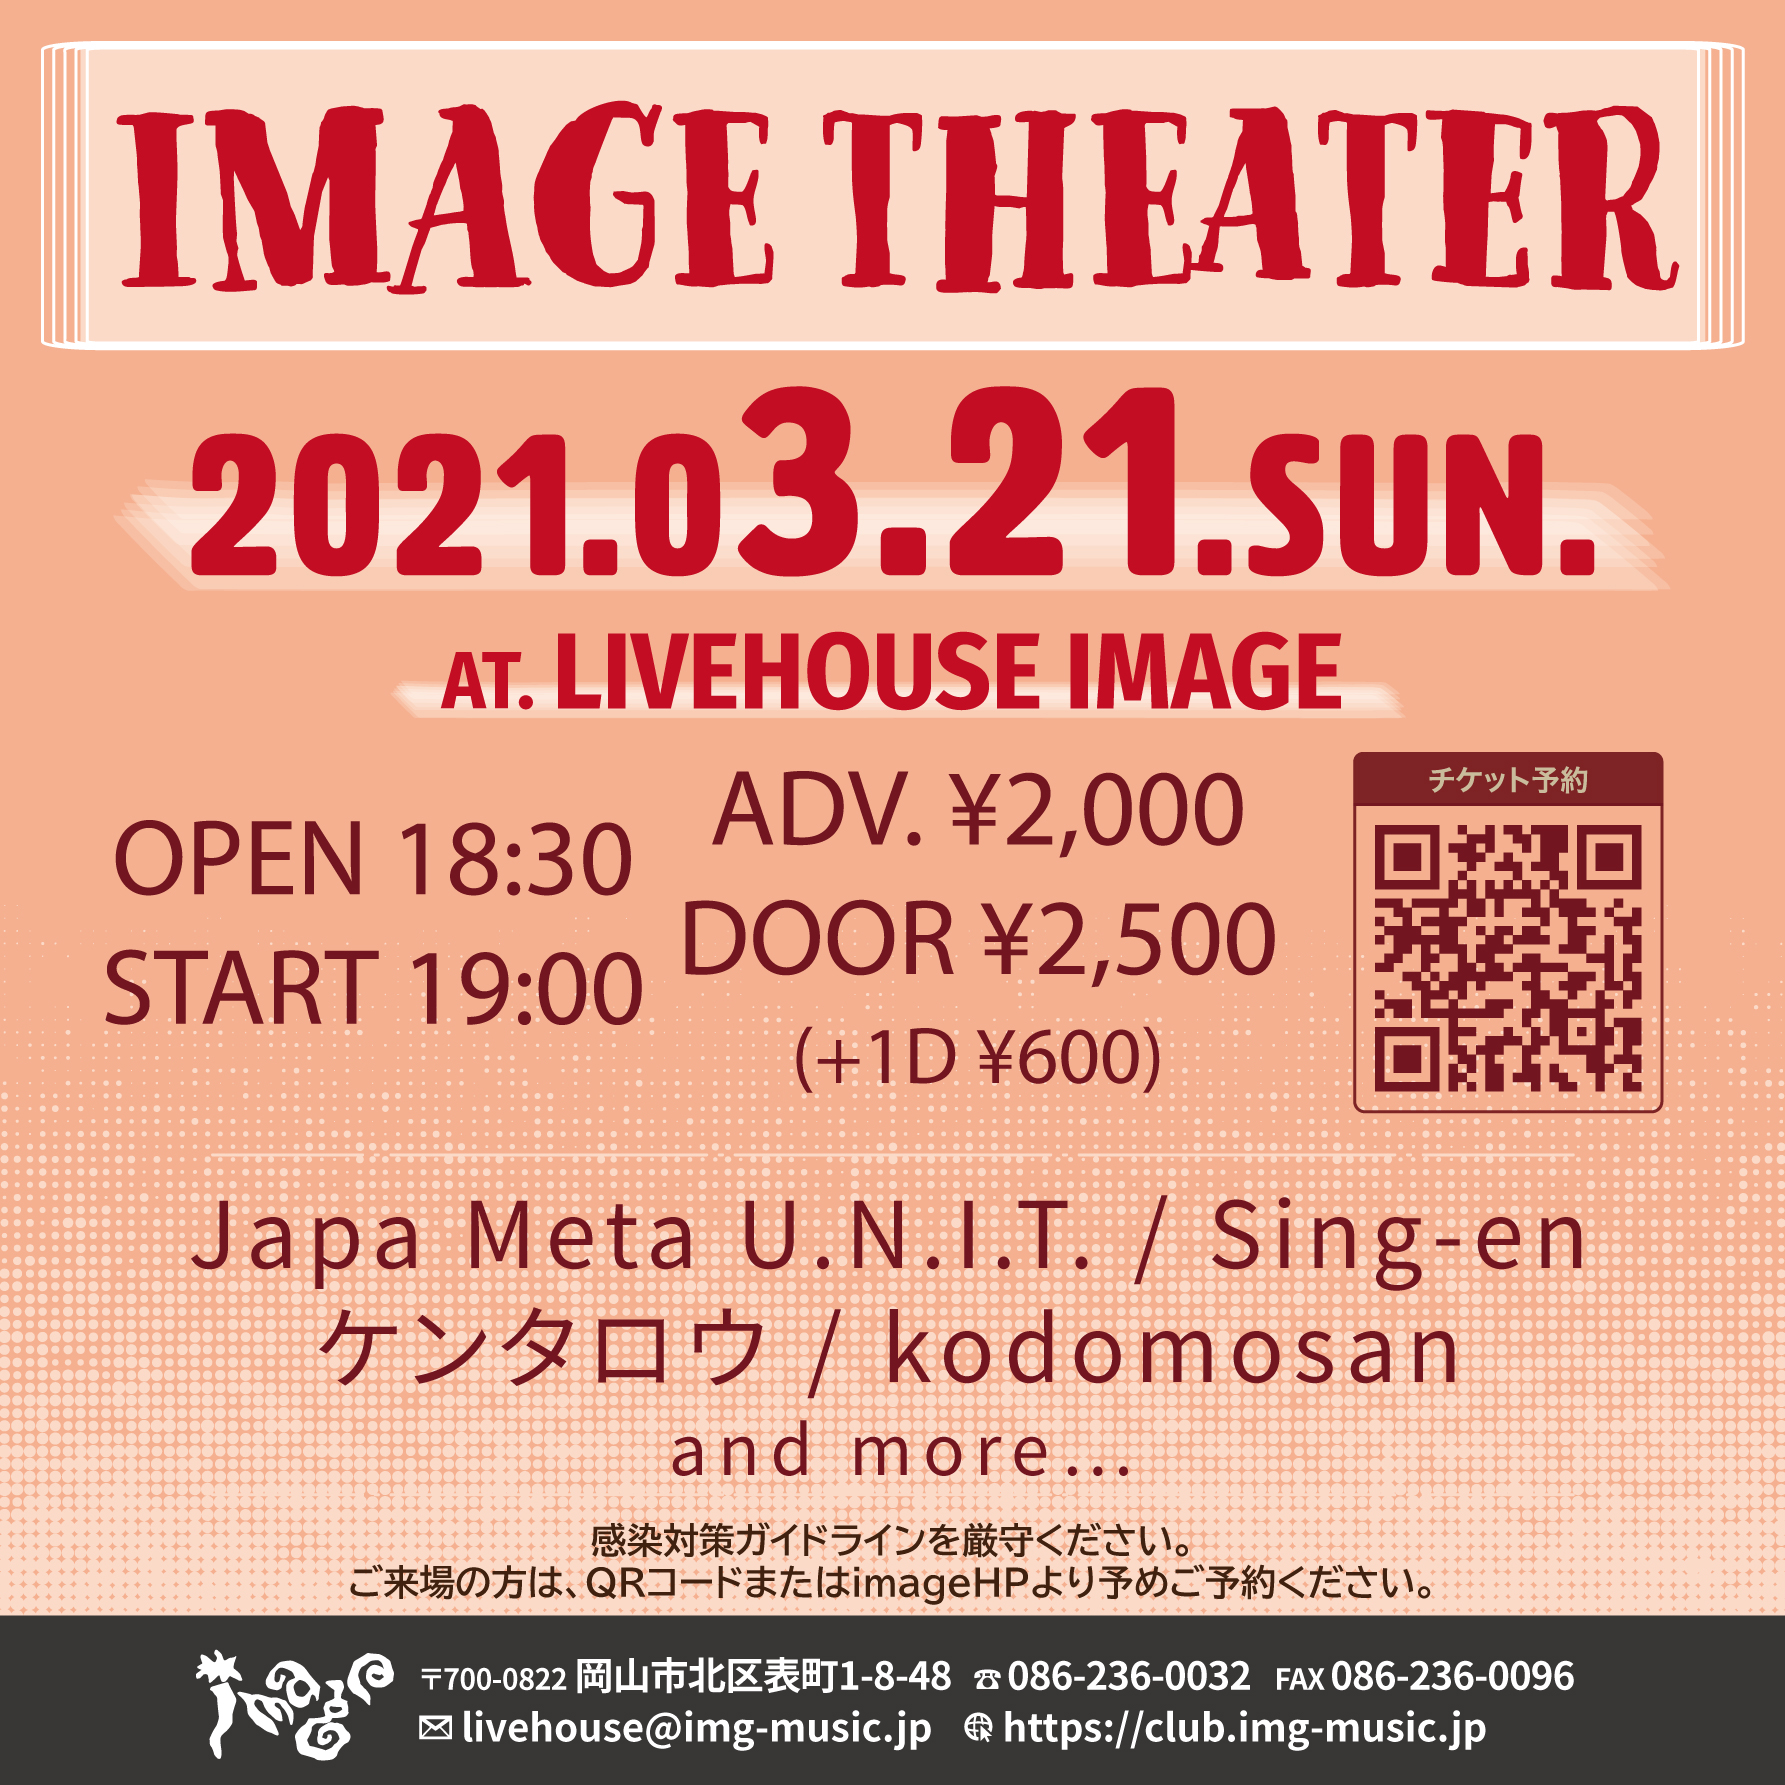 IMAGE THEATER